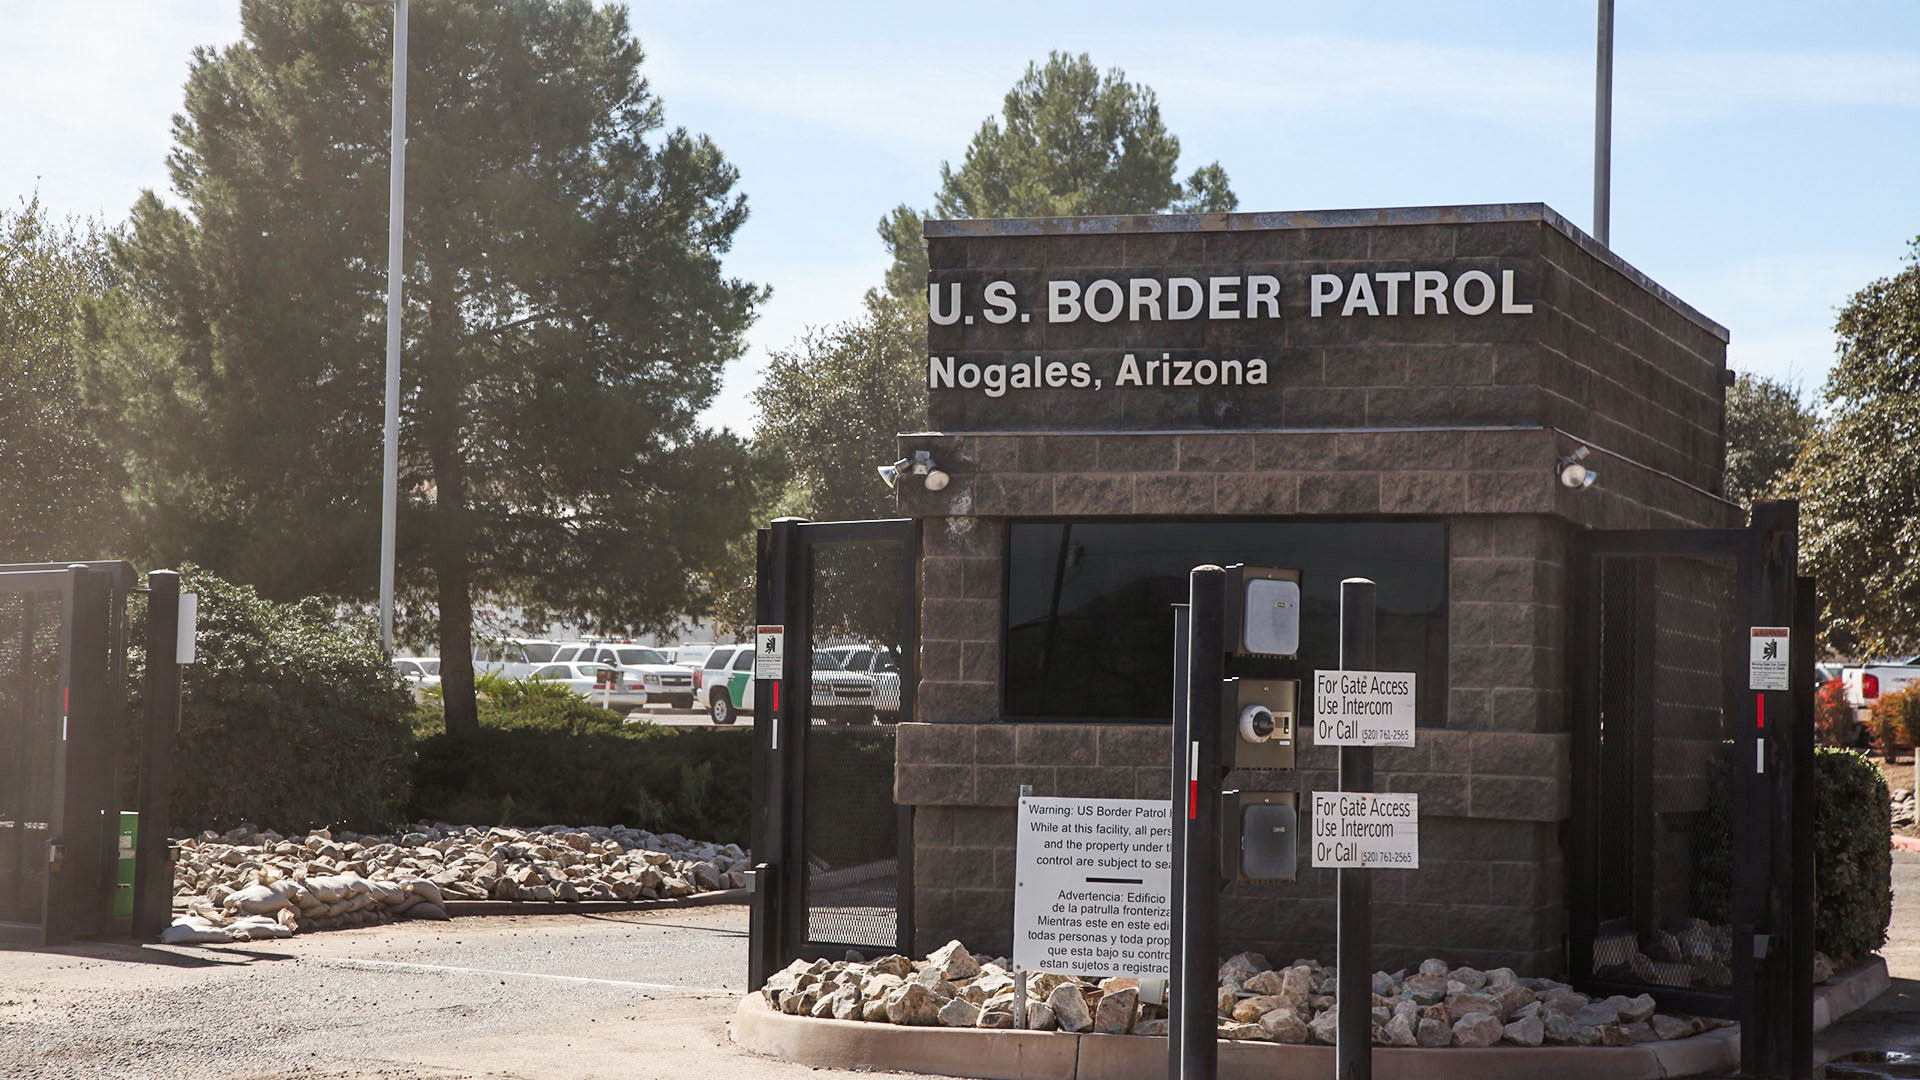 The gate at the Nogales Border Patrol Station, February 2017.